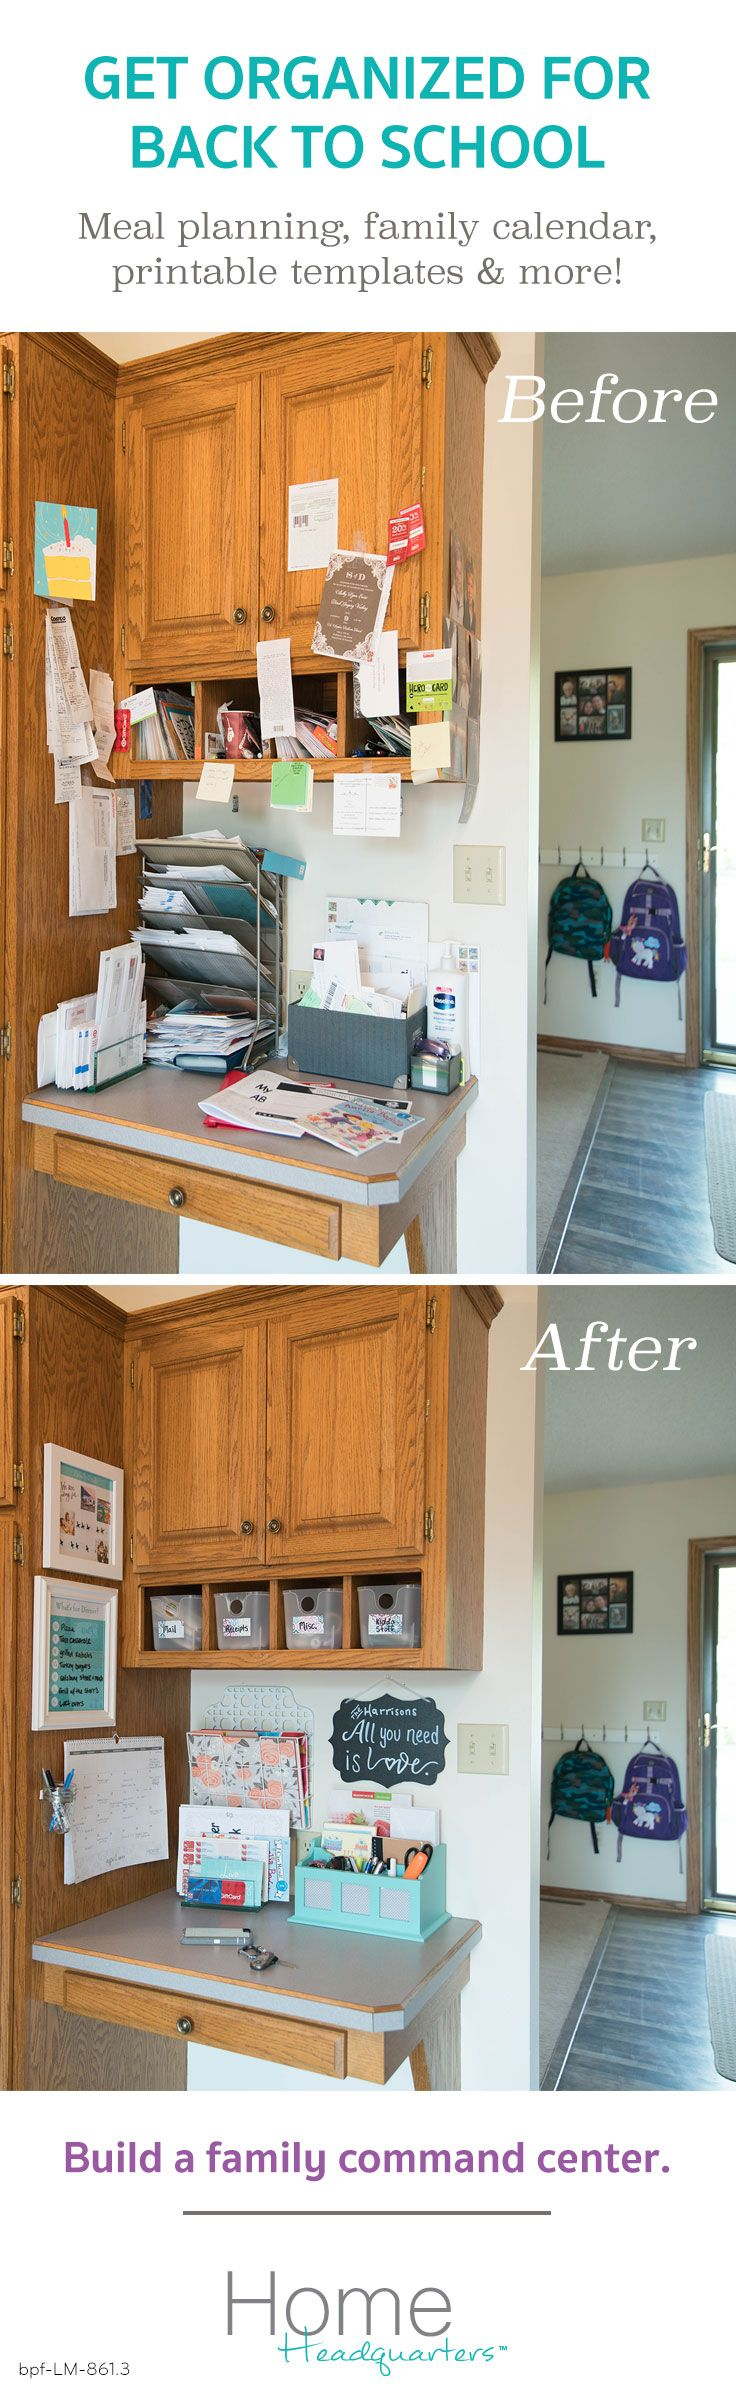 Turn that pile of papers, mail & post-it notes into an organized system.  Build a family Home Headquarters to save time, stress & money.  We'll show you how!